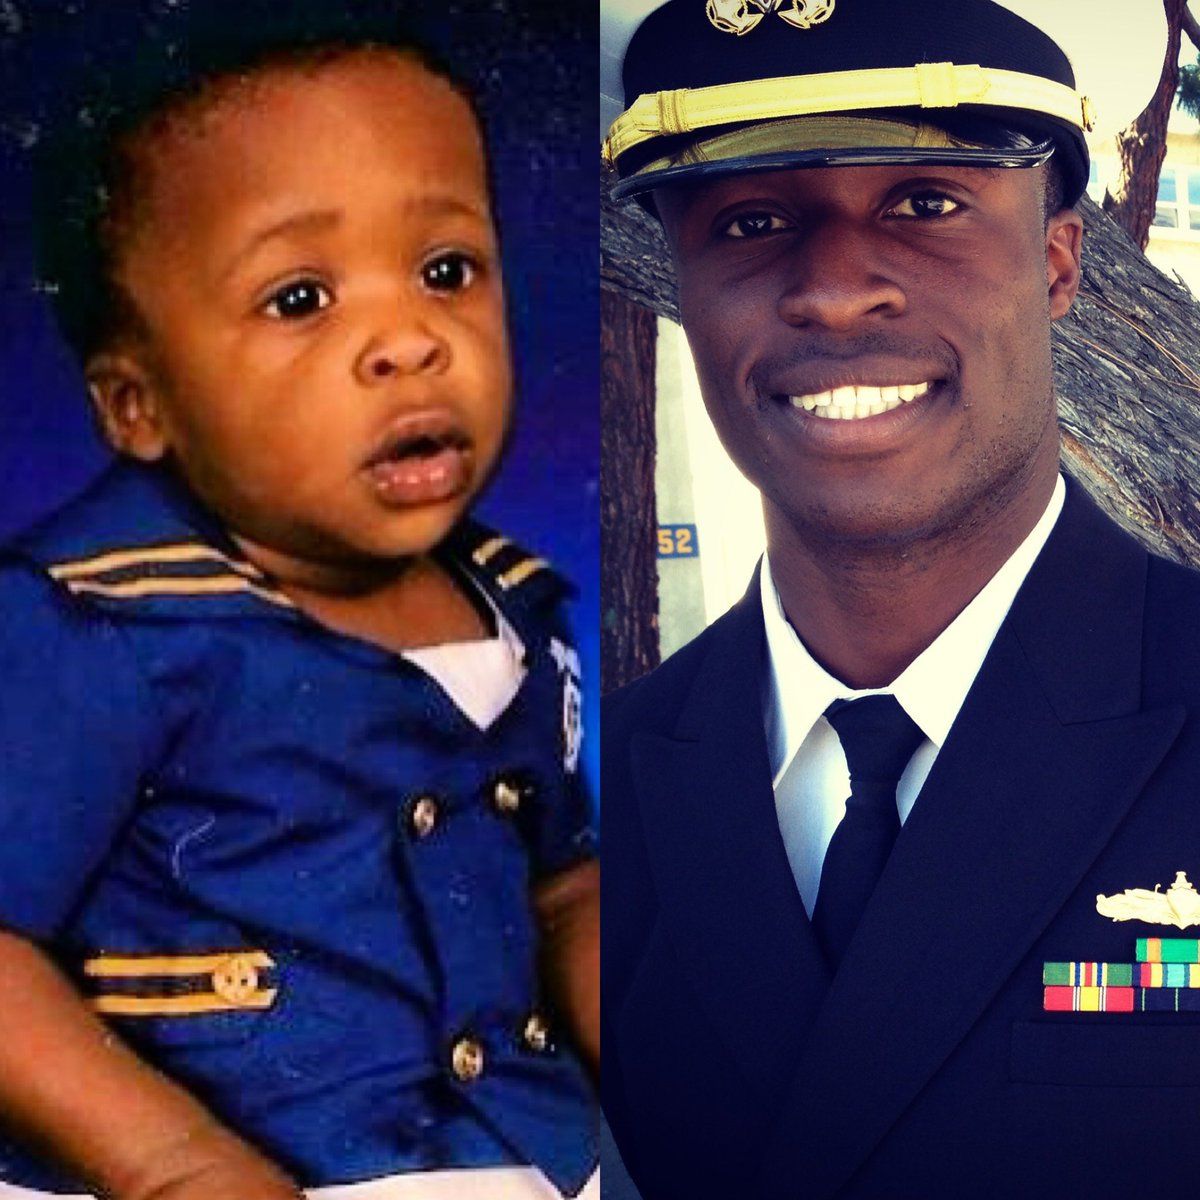 It's like my parents saw it coming... #GoNavy #ServiceToCountry #TeamUSA<br>http://pic.twitter.com/wNQZc8IL17